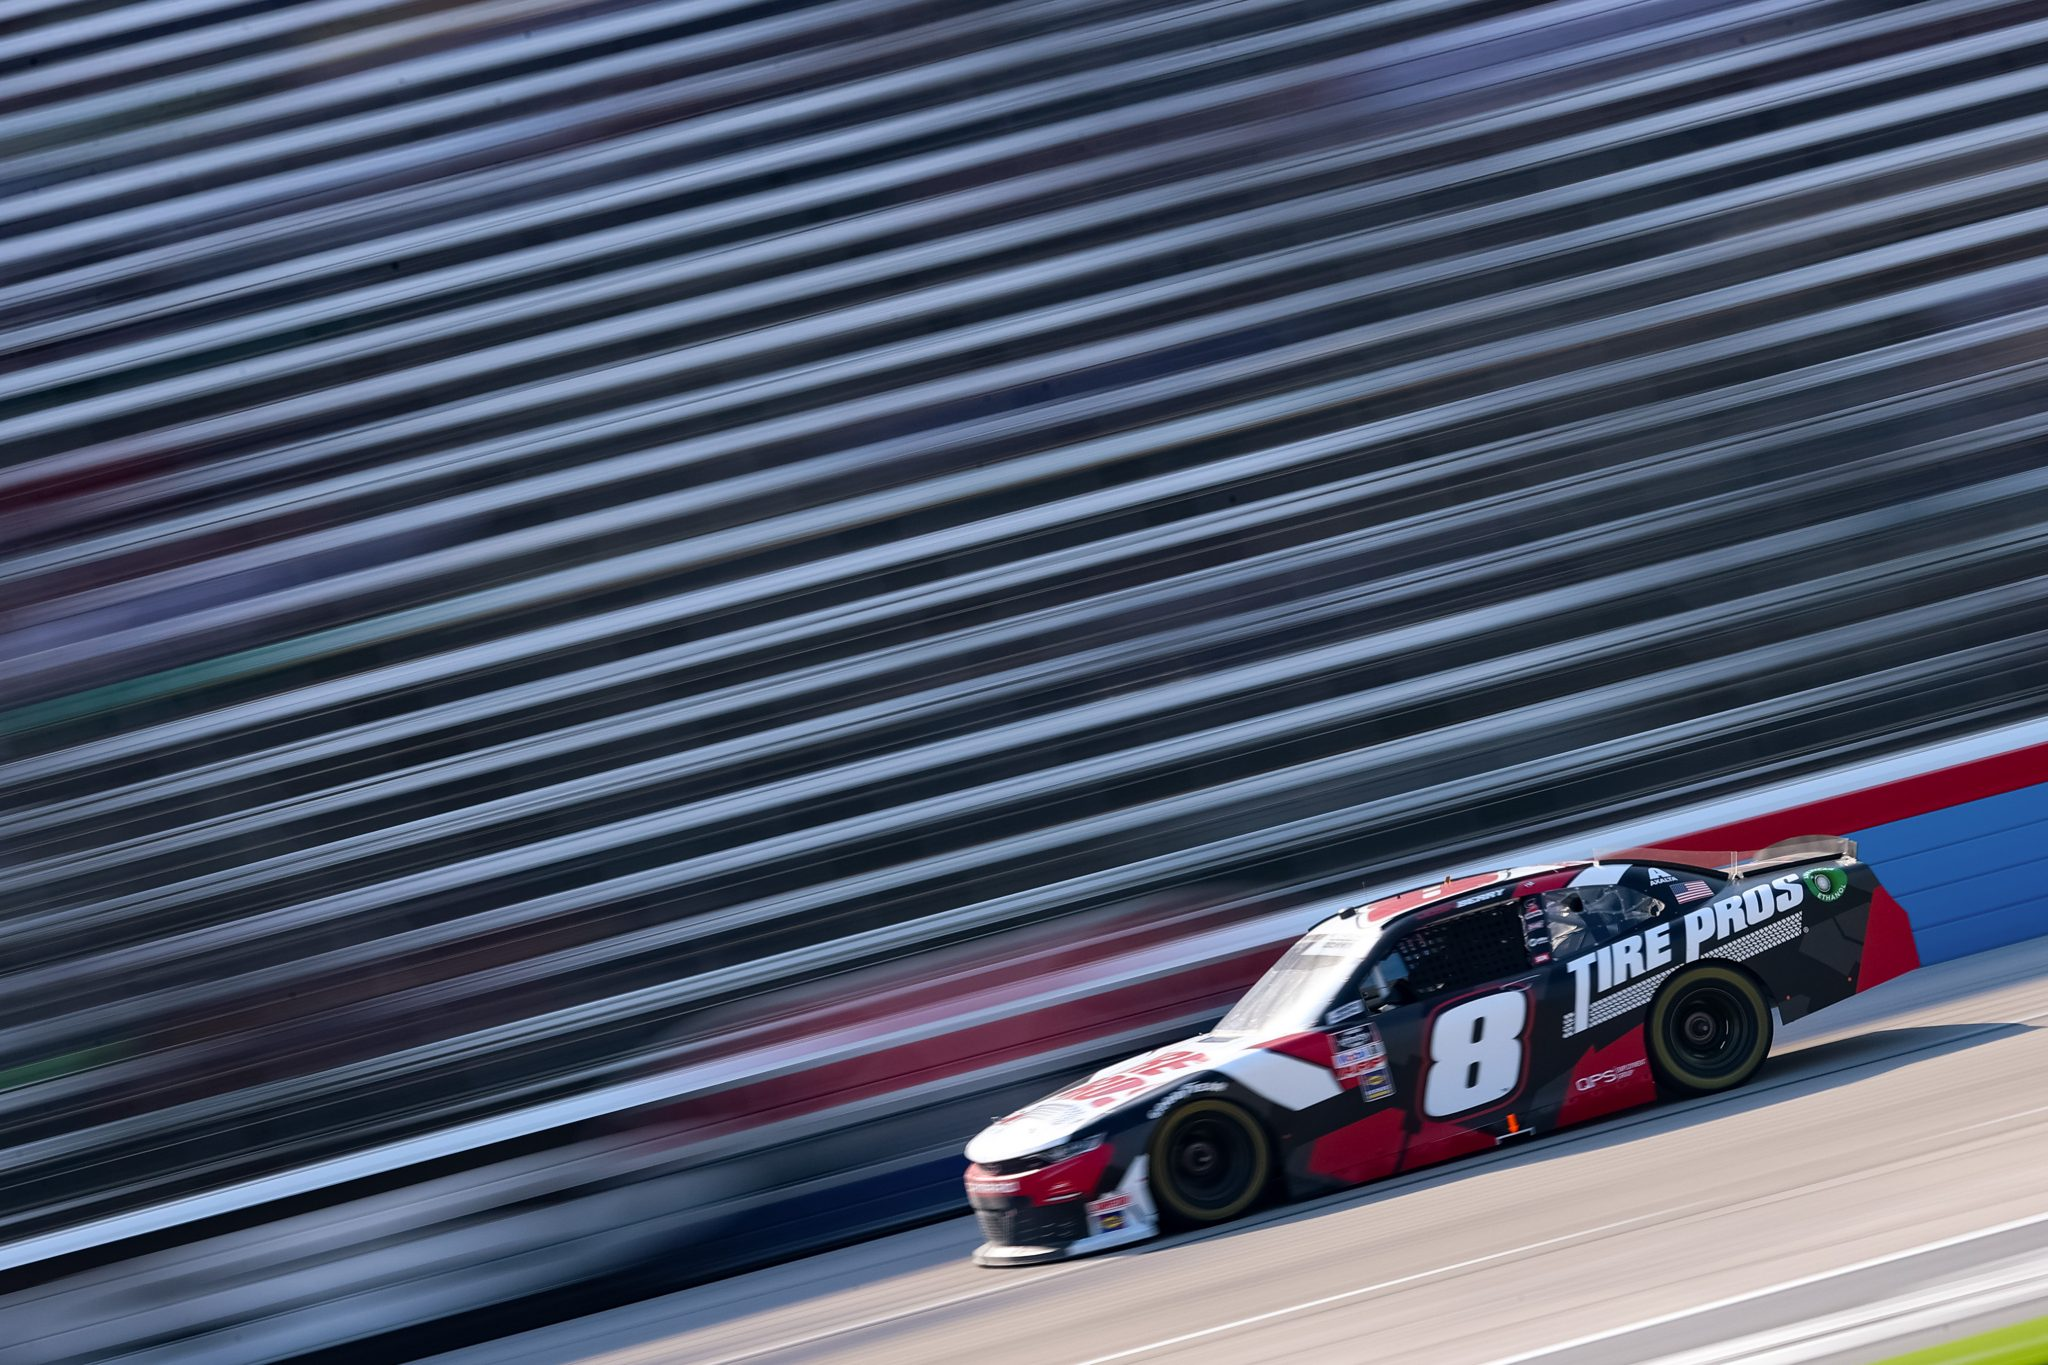 FORT WORTH, TEXAS - JUNE 12: Josh Berry, driver of the #8 Tire Pros Chevrolet, drives during the NASCAR Xfinity Series Alsco Uniforms 250 at Texas Motor Speedway on June 12, 2021 in Fort Worth, Texas. (Photo by Carmen Mandato/Getty Images) | Getty Images